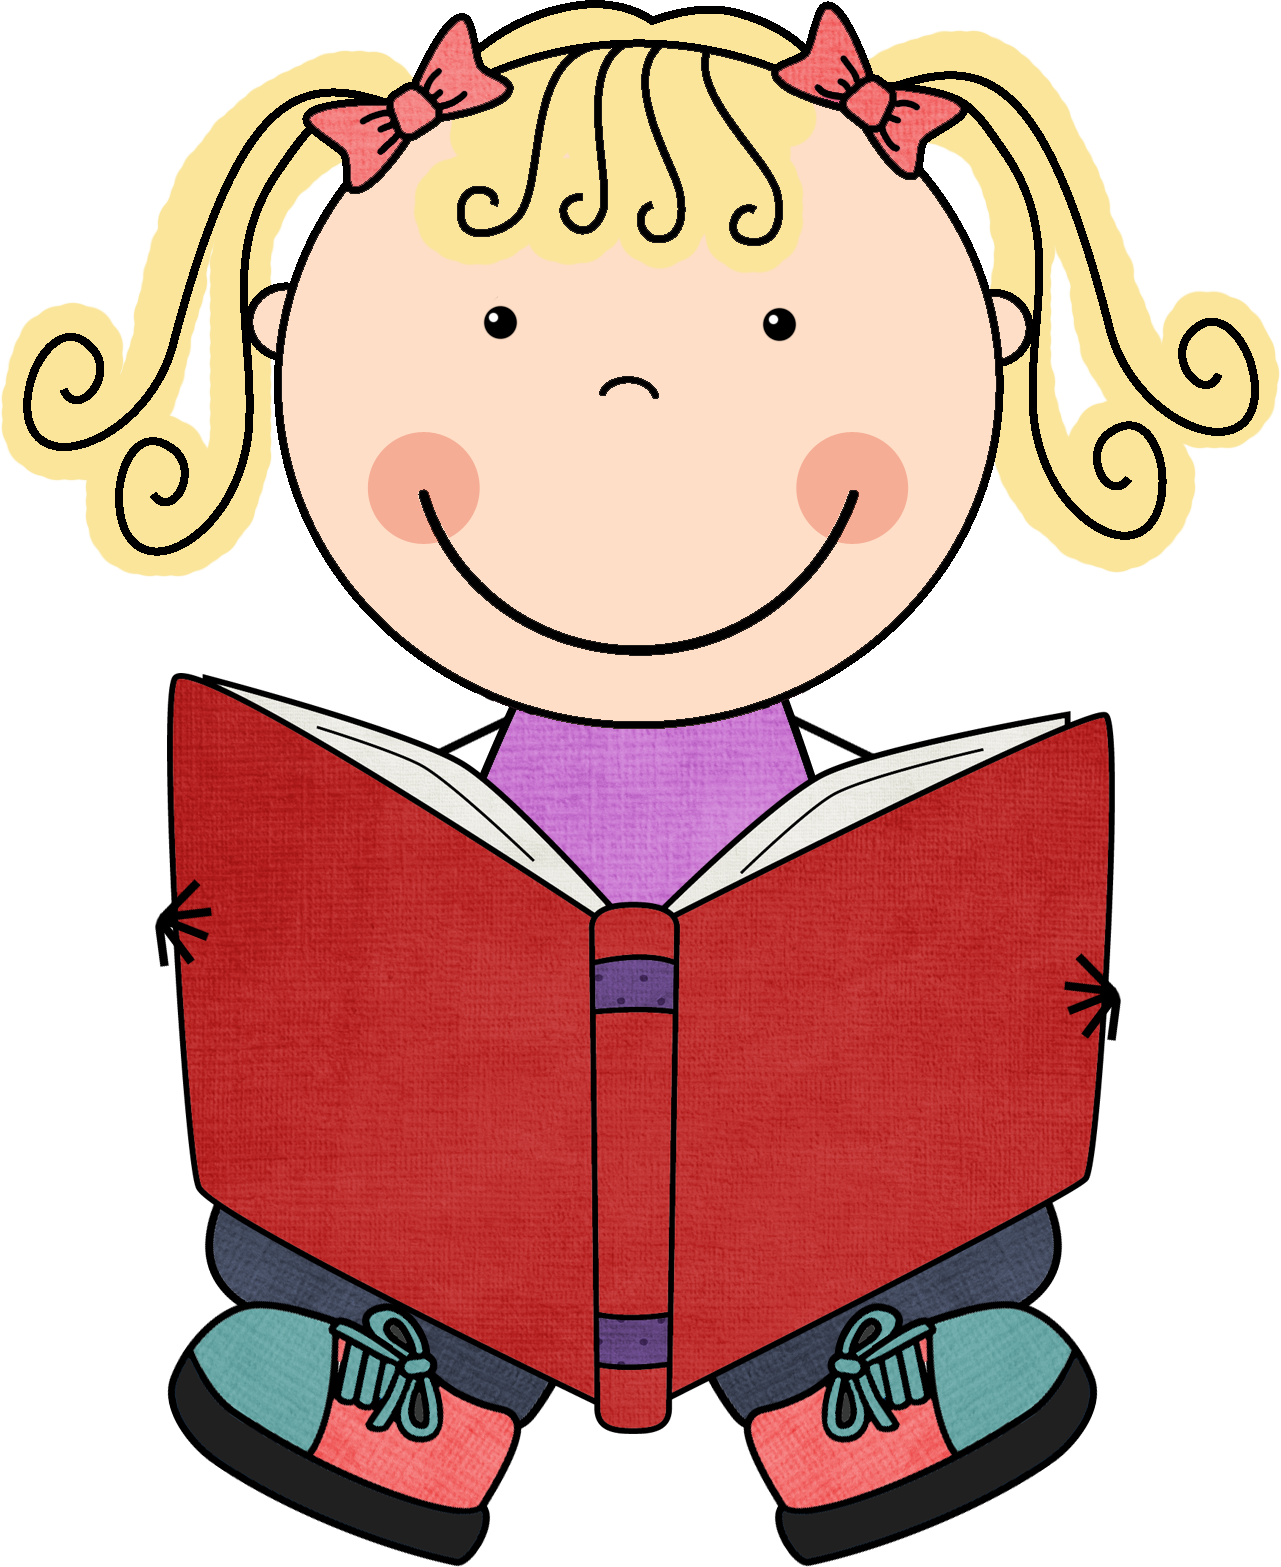 Child reading book clipart jpg free download Kids with books clipart - ClipartFest jpg free download